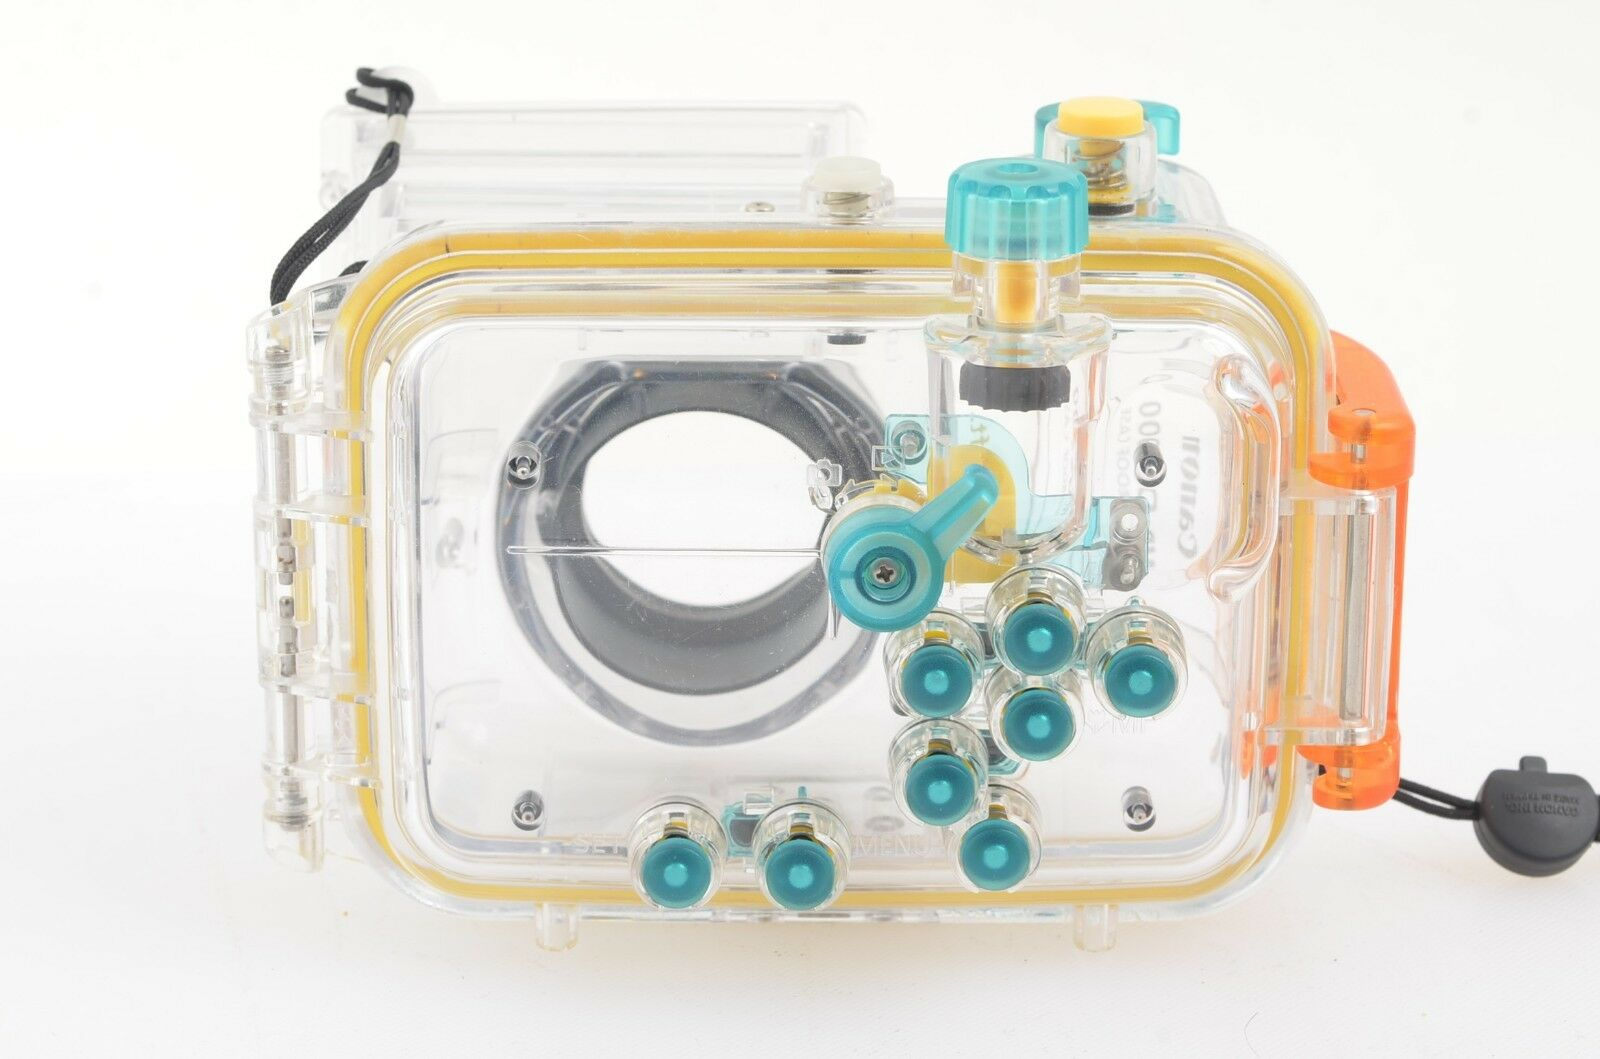 GENUINE BOXED CANON UNDERWATER HOUSING WP-DC900 FOR CANON POWERSHOT A80, CLEAN - $36.95